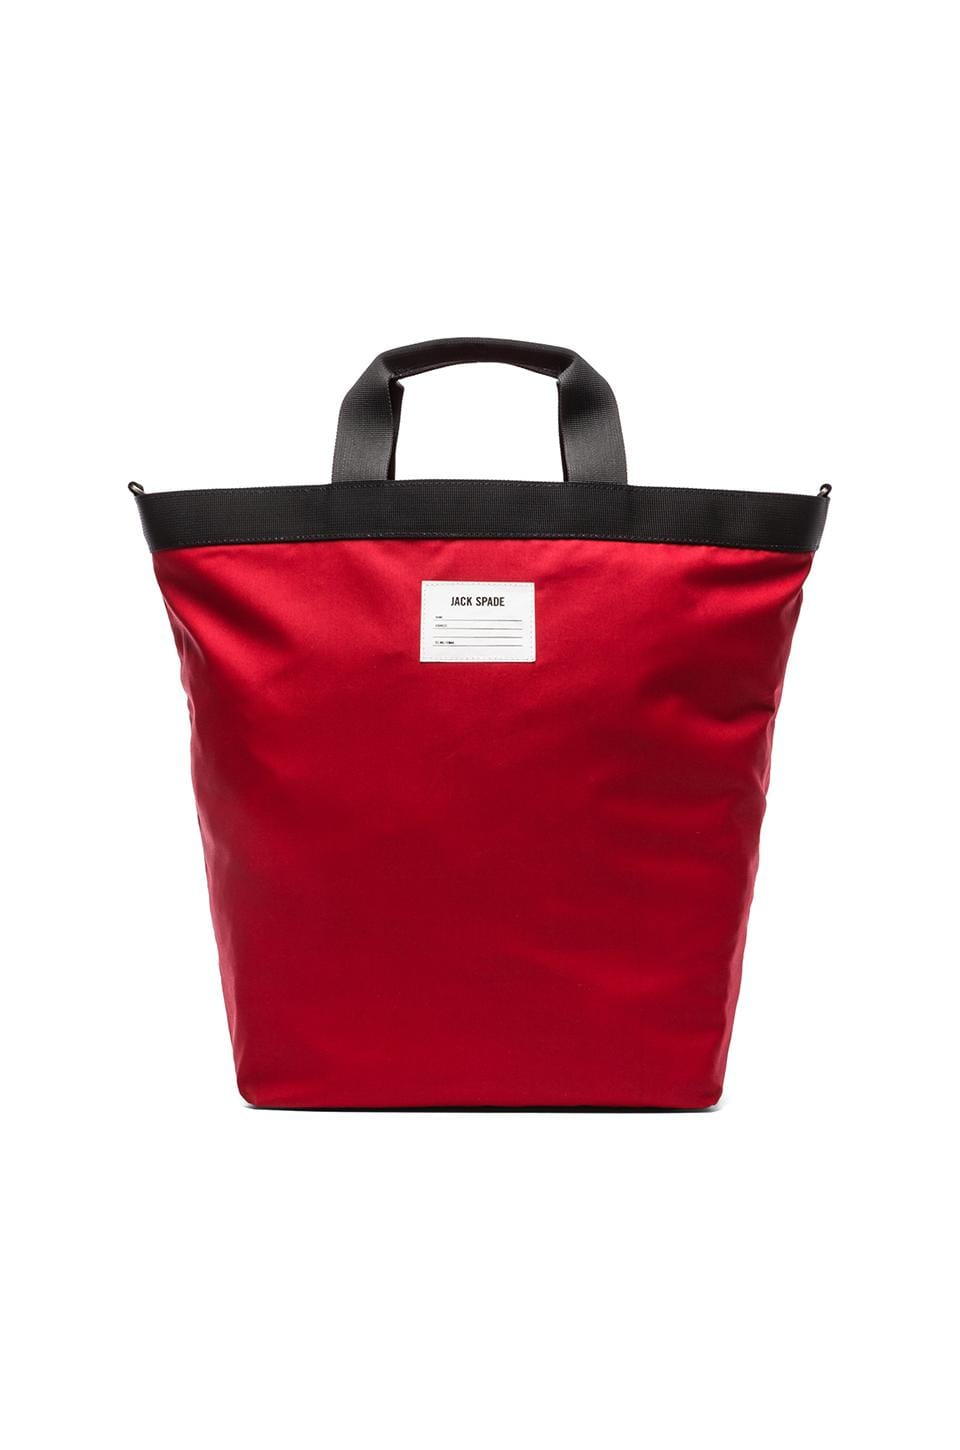 Jack Spade Apex Carrier Tote in Red